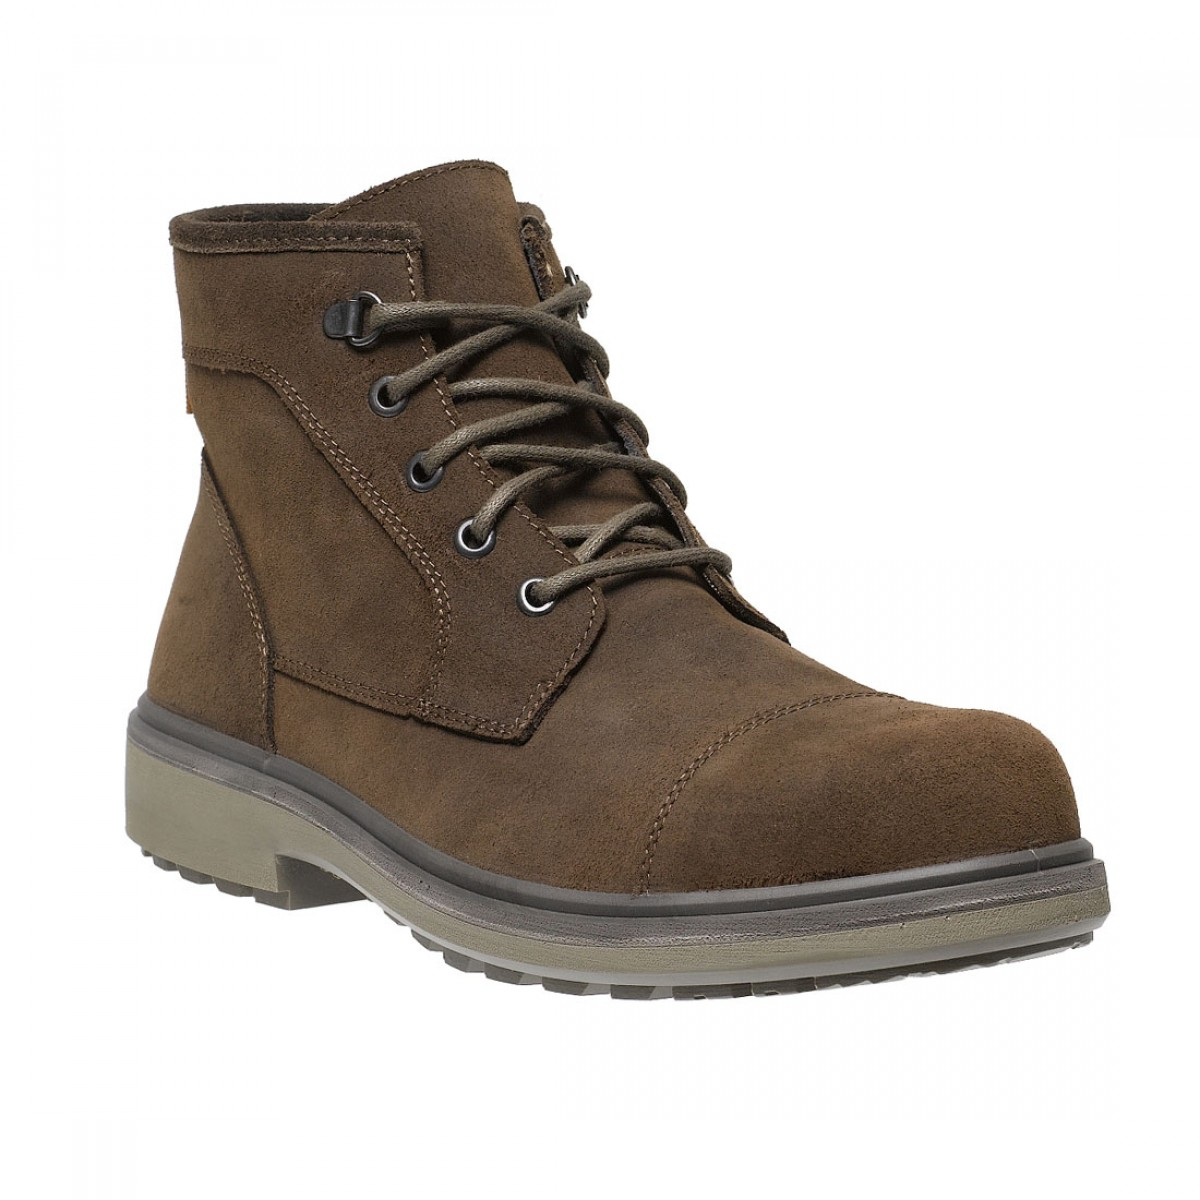 83b96d2033e Parade Oslo Lightweight Executive Mens Smart Brown Leather Safety Boots